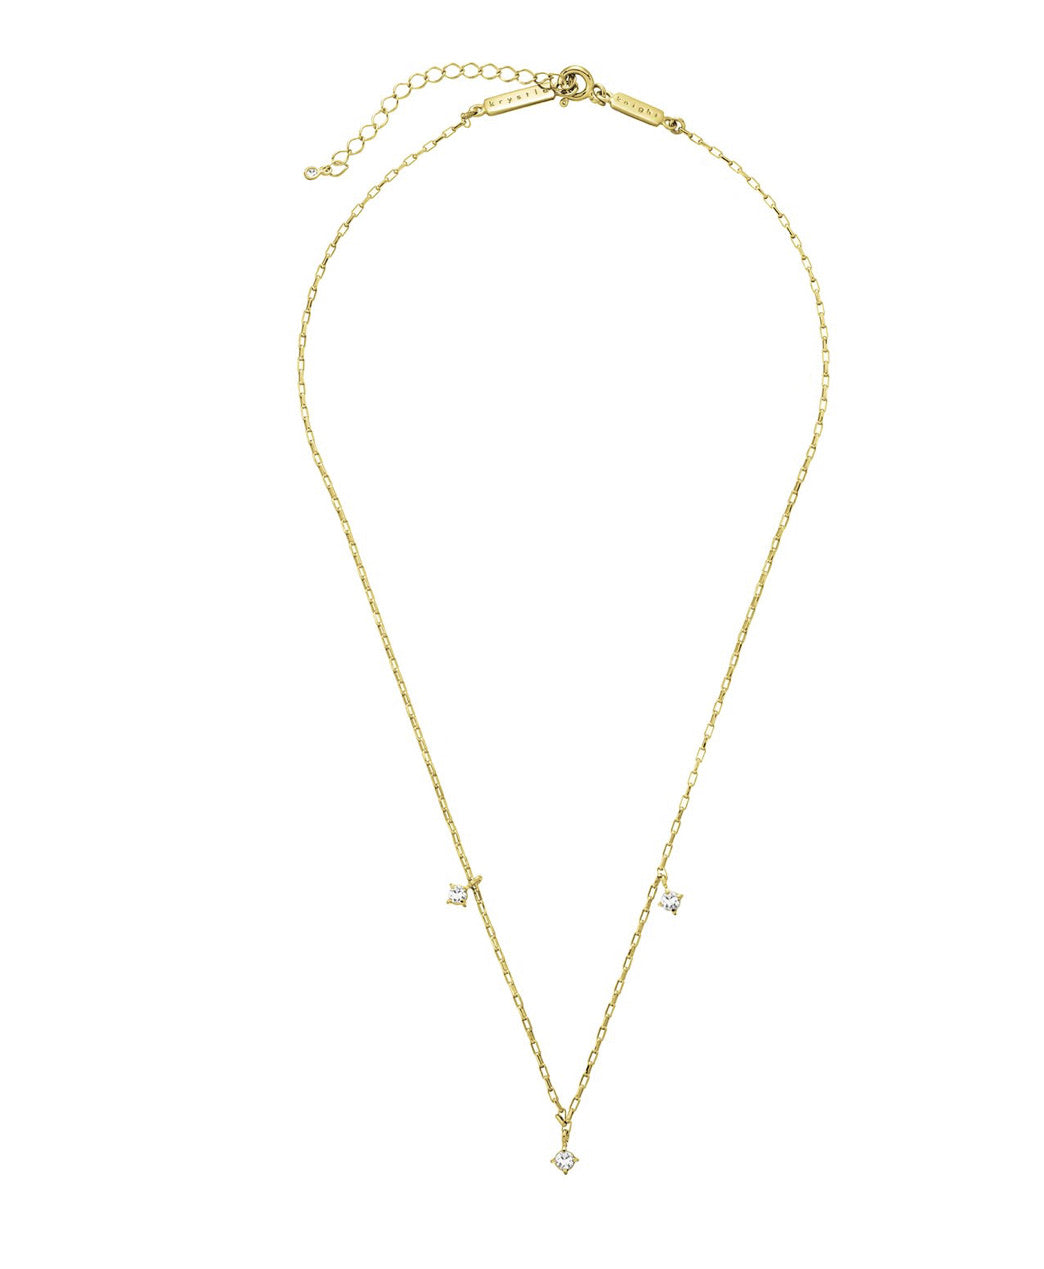 SHIMMERING PRECIOUS NECKLACE- GOLD- WHITE SAPPHIRE